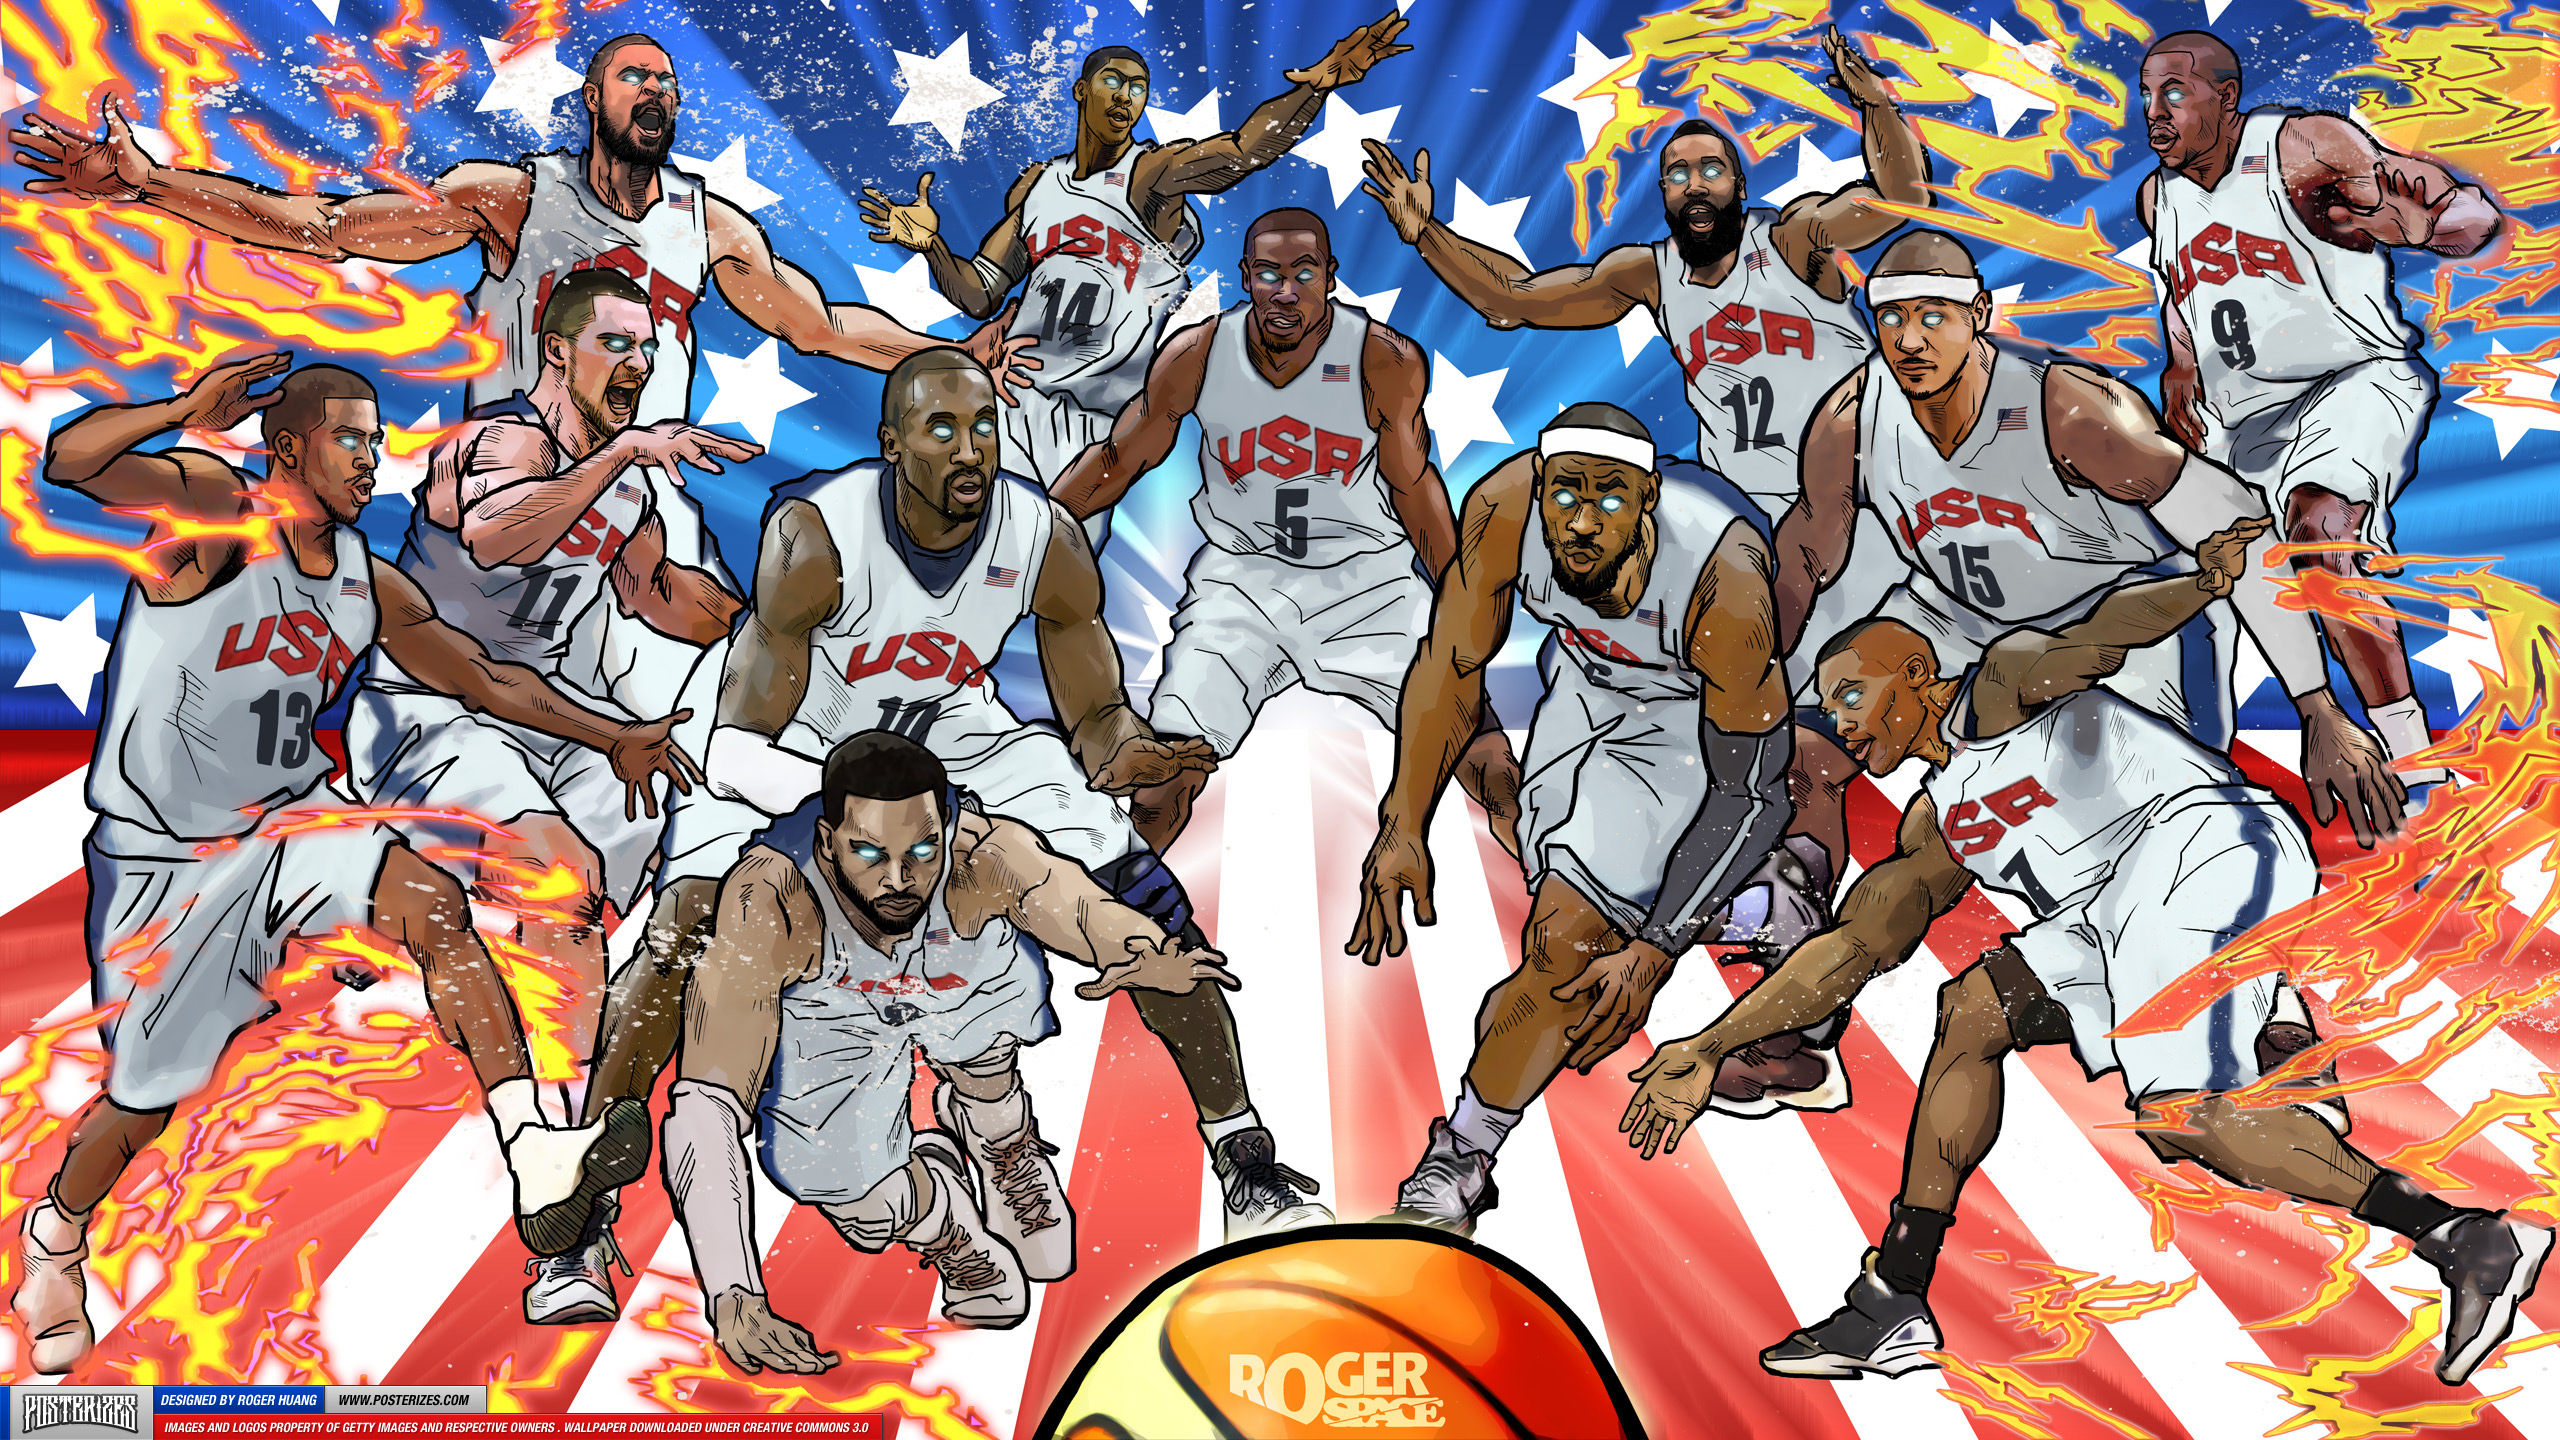 Nba Wallpapers 2014 wallpaper   1220369 2560x1440